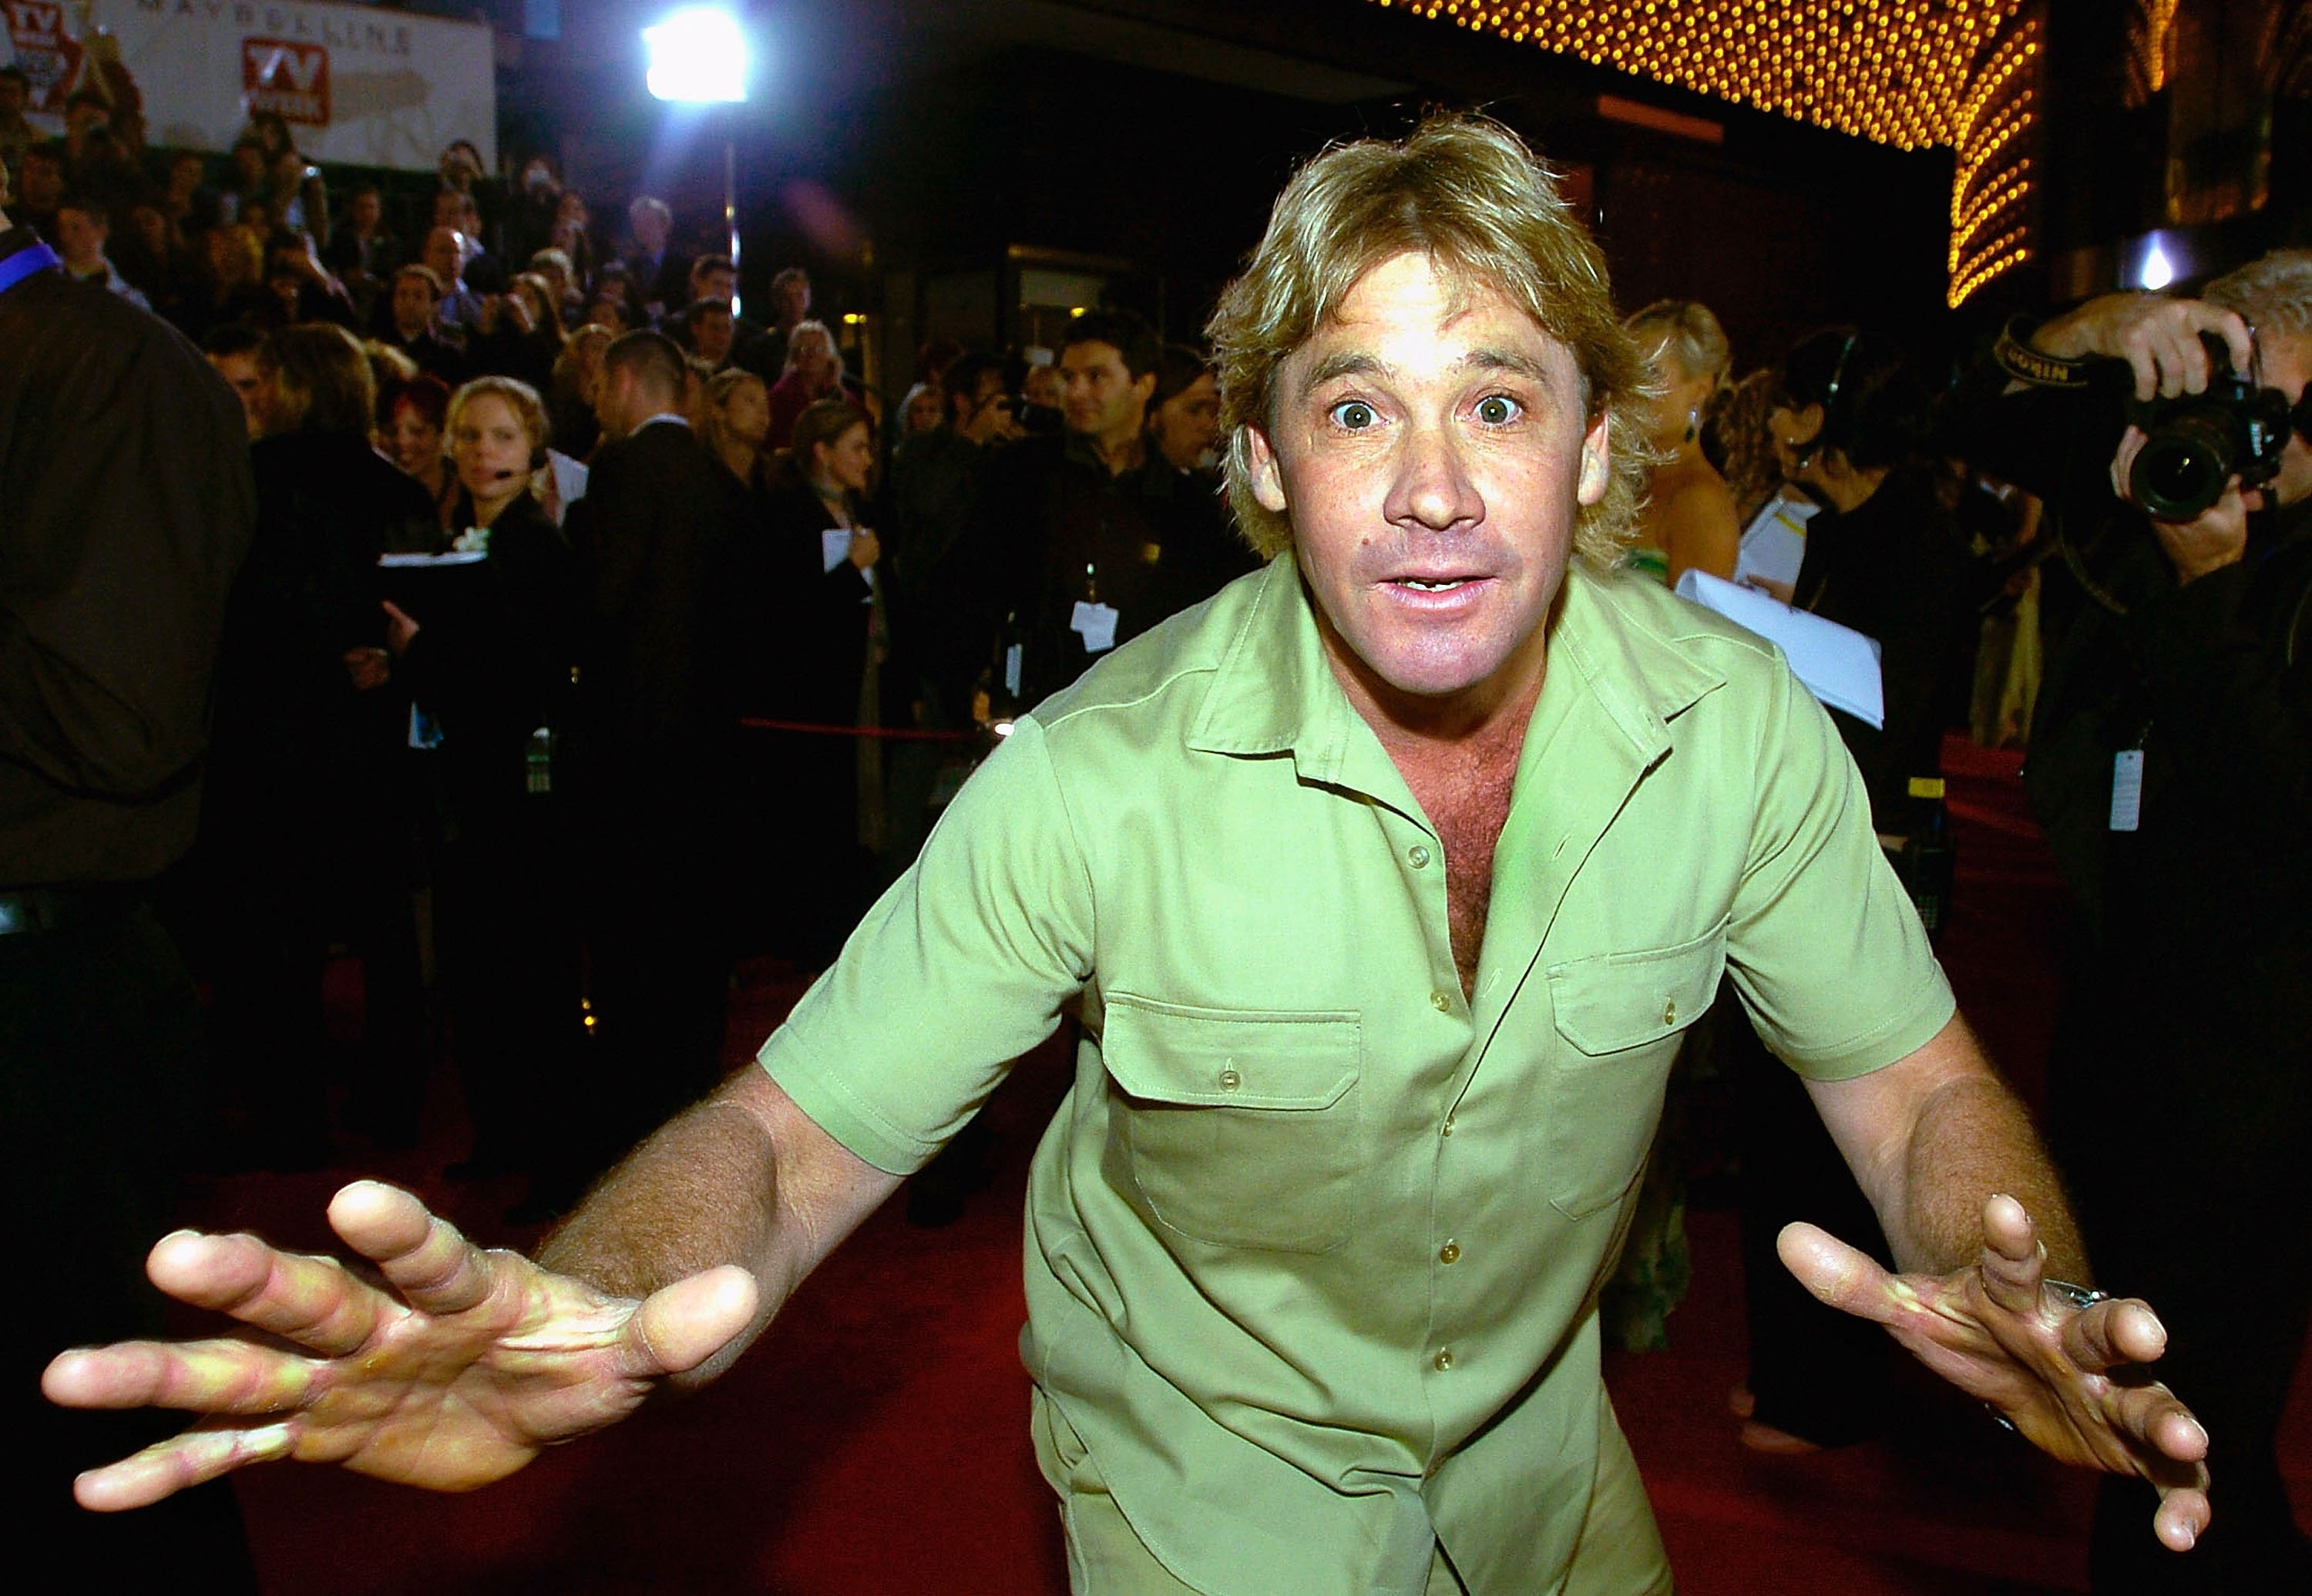 Steve Irwin 'The Crocodile Hunter' attends the 46th Annual TV Week Logie Awards at the Crown Entertainment Complex April 18, 2004 | Photo: GettyImages